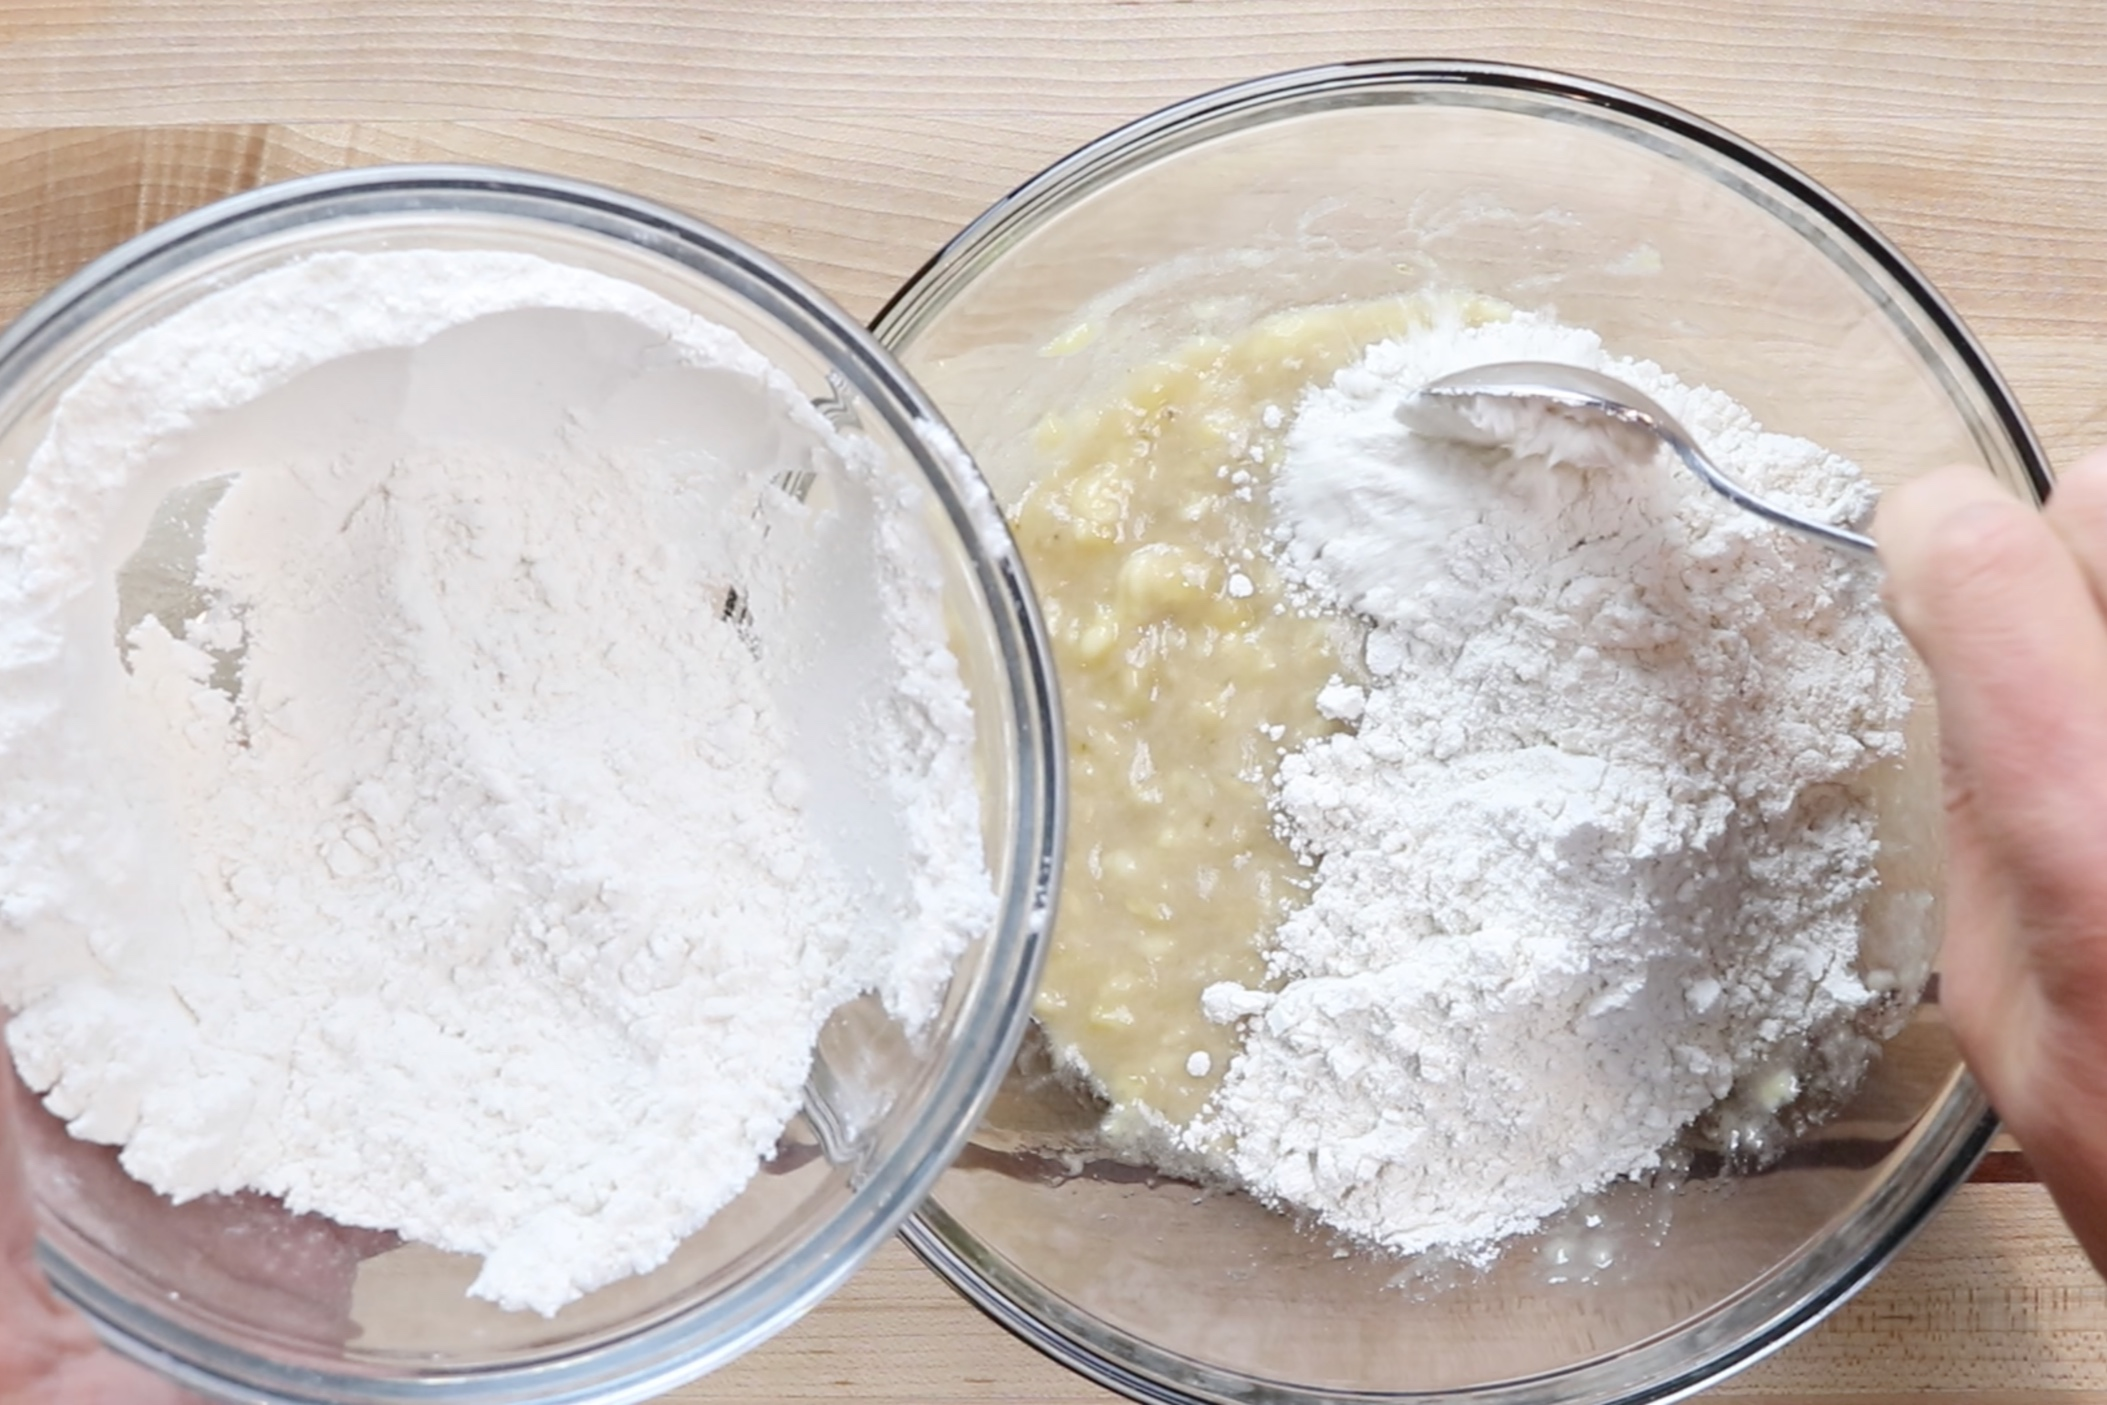 4. Add half of the flour mixture and stir together with a spatula. -